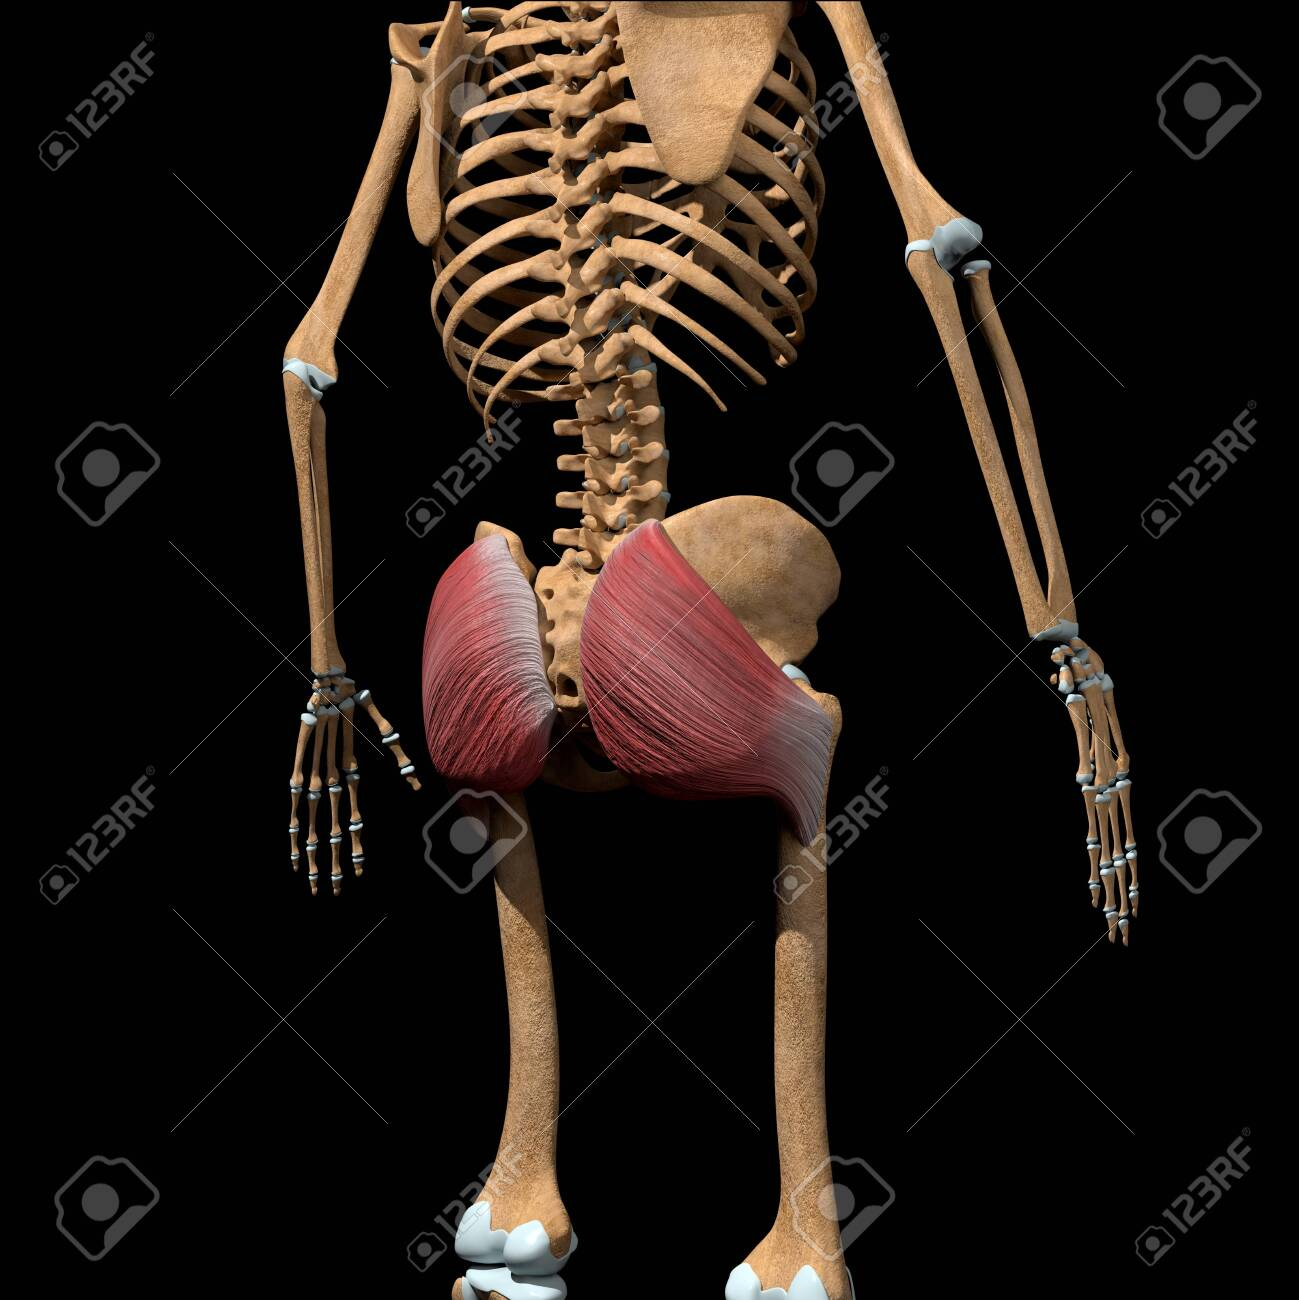 This 3d illustration shows the gluteus maximus muscles on skeleton - 142171660